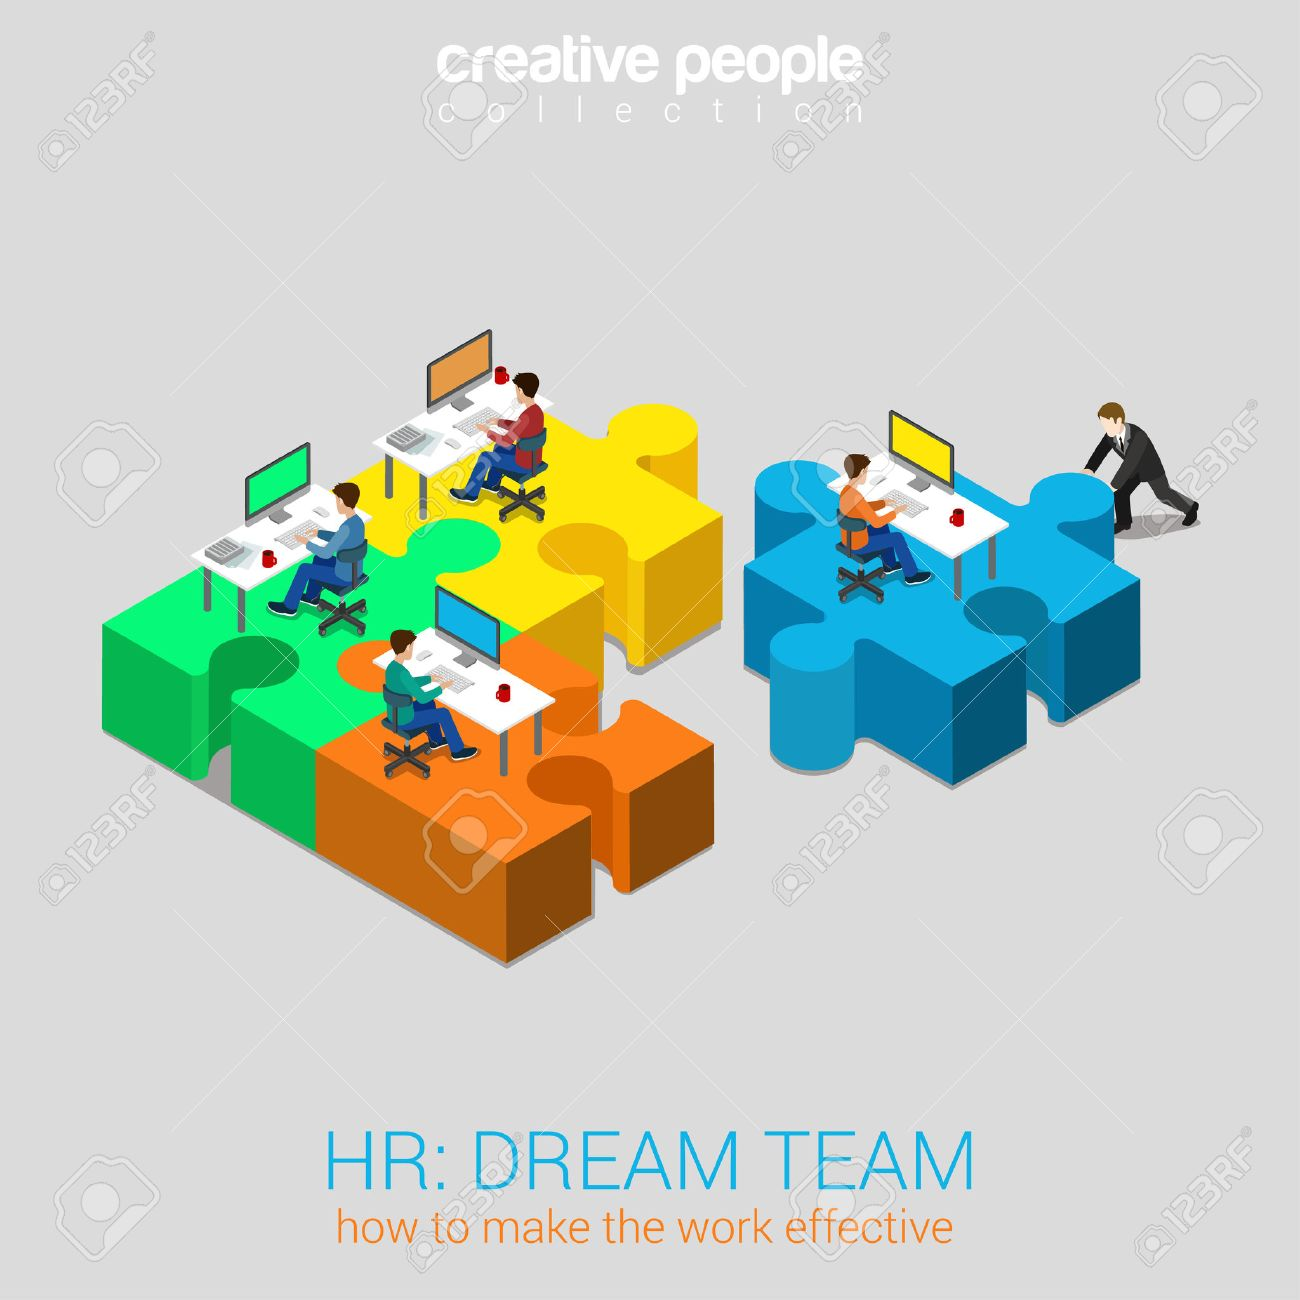 HR human relations dream team solution flat 3d web isometric infographic concept vector. Businessman pushing puzzle piece with company newbie workplace to the team. Creative people collection. Stock Vector - 48579022